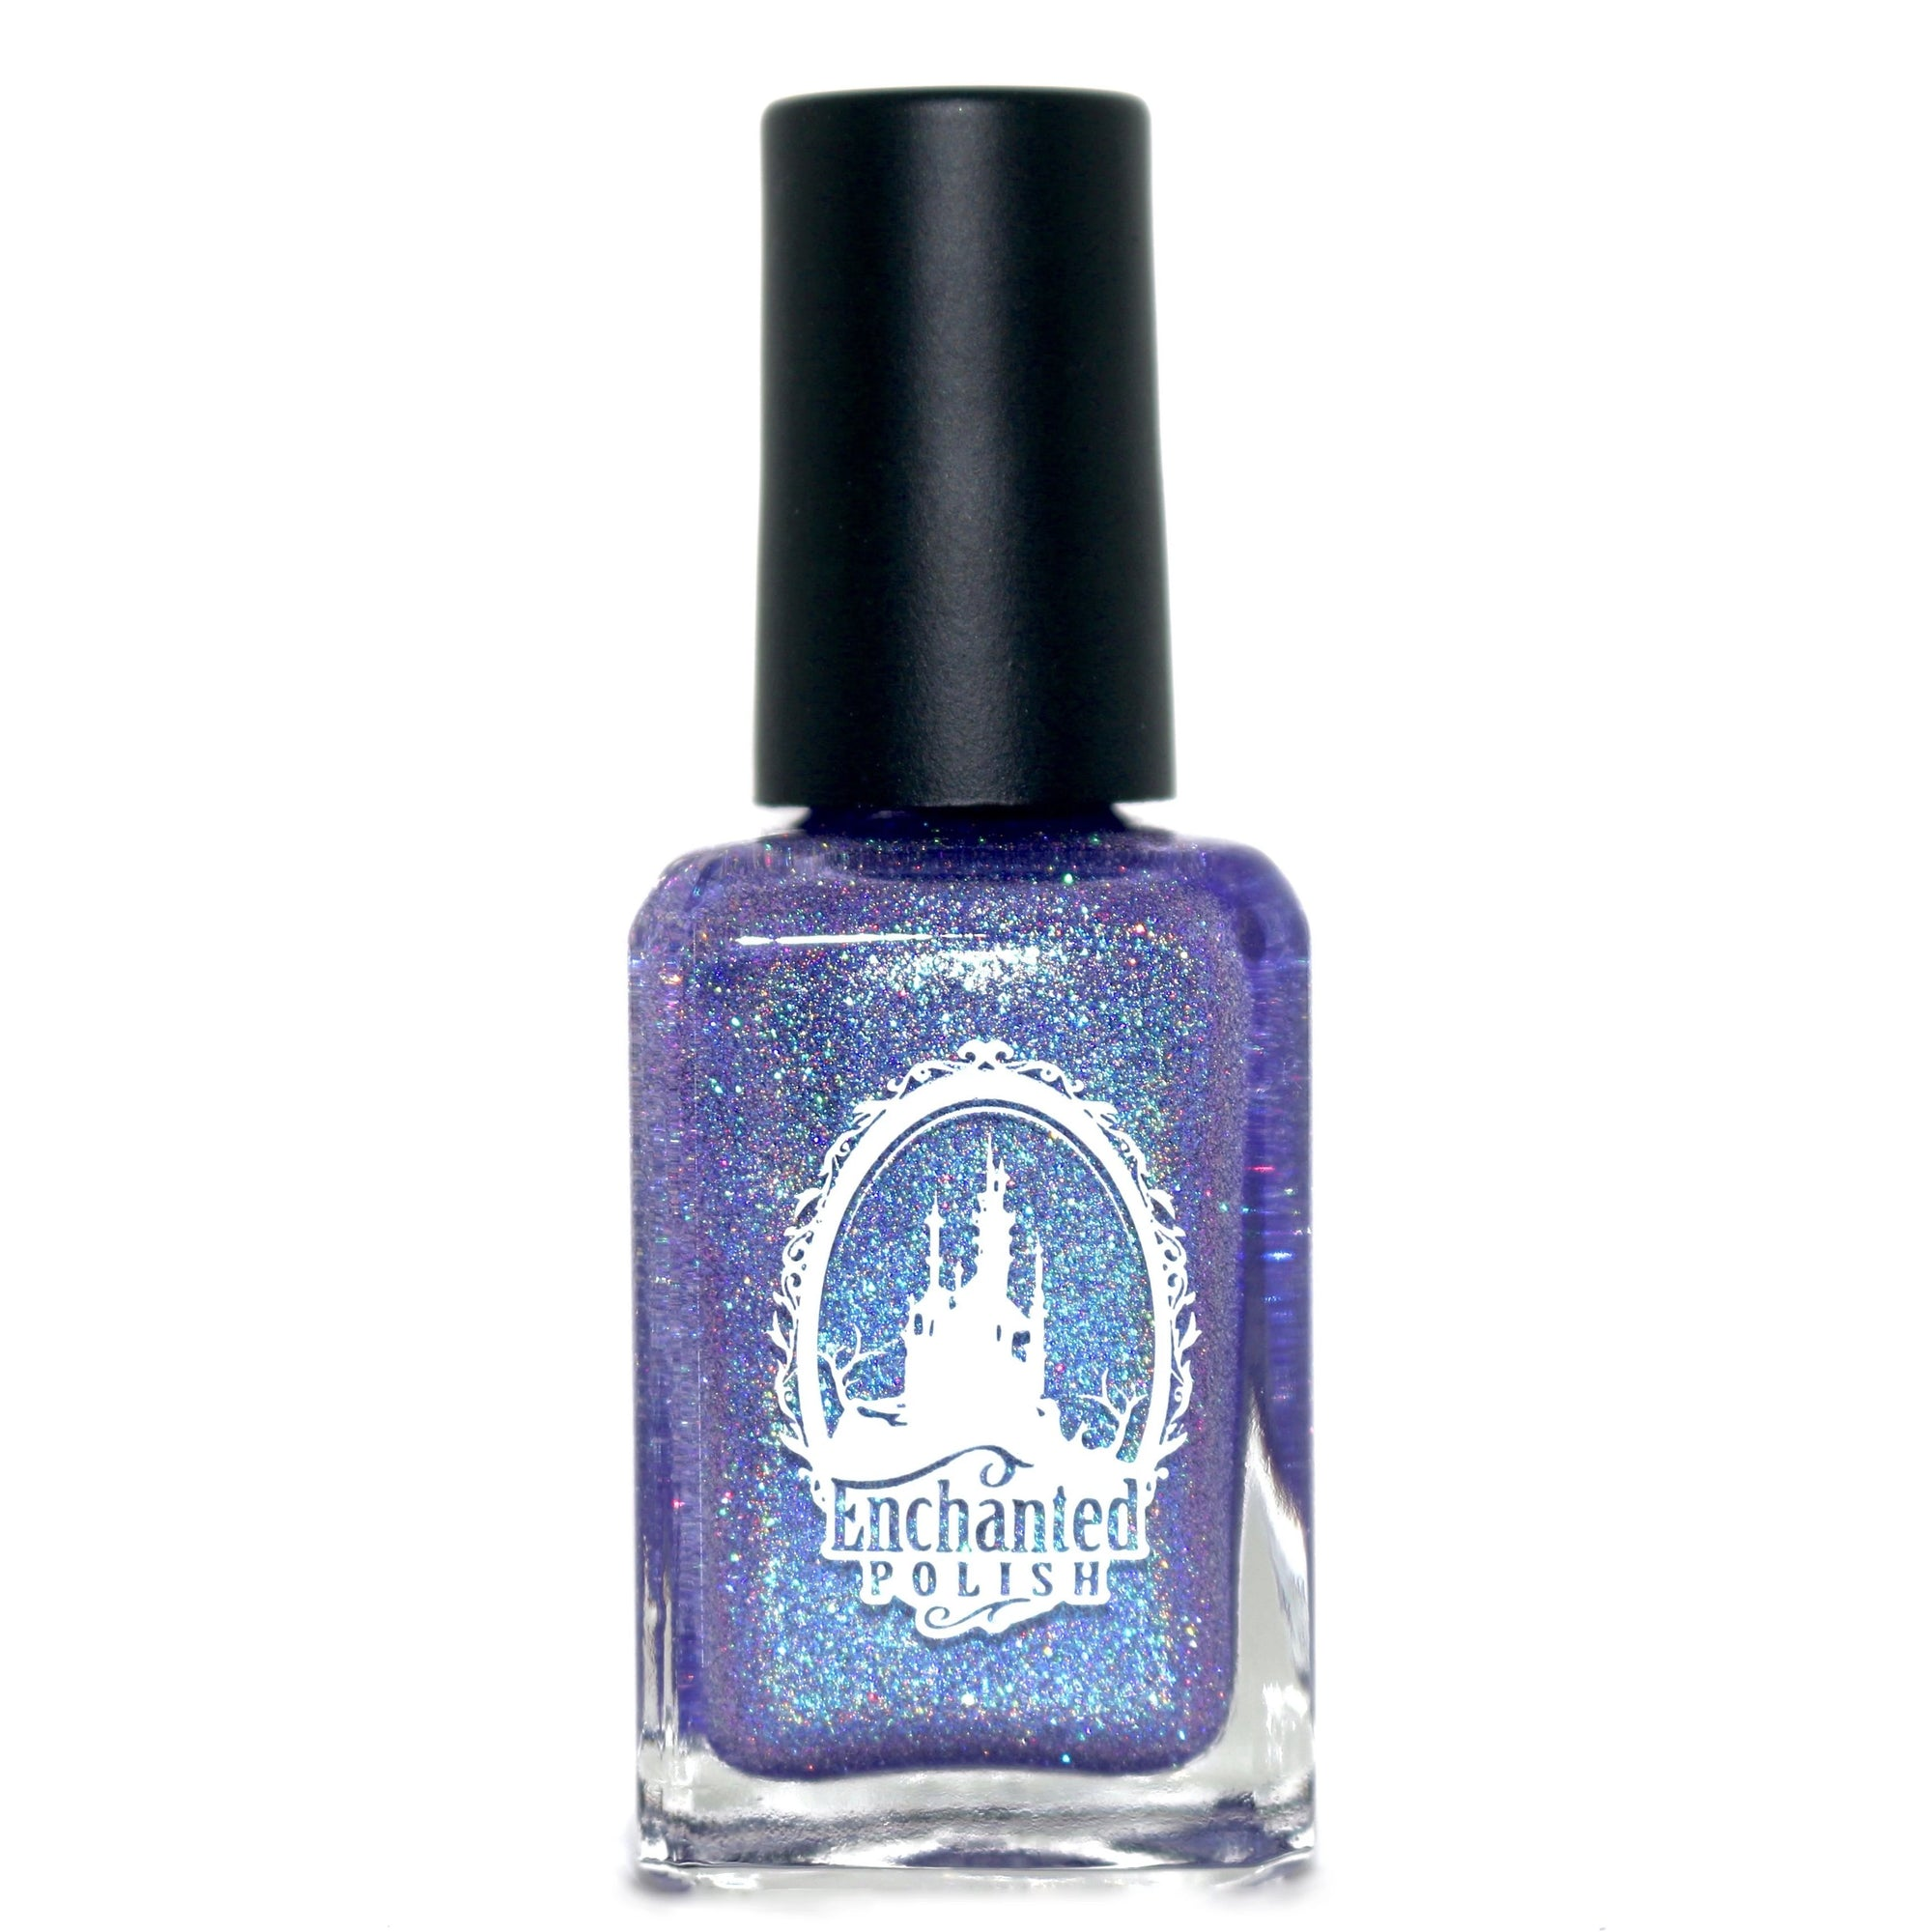 *PRE-SALE* Enchanted Polish - Frozen